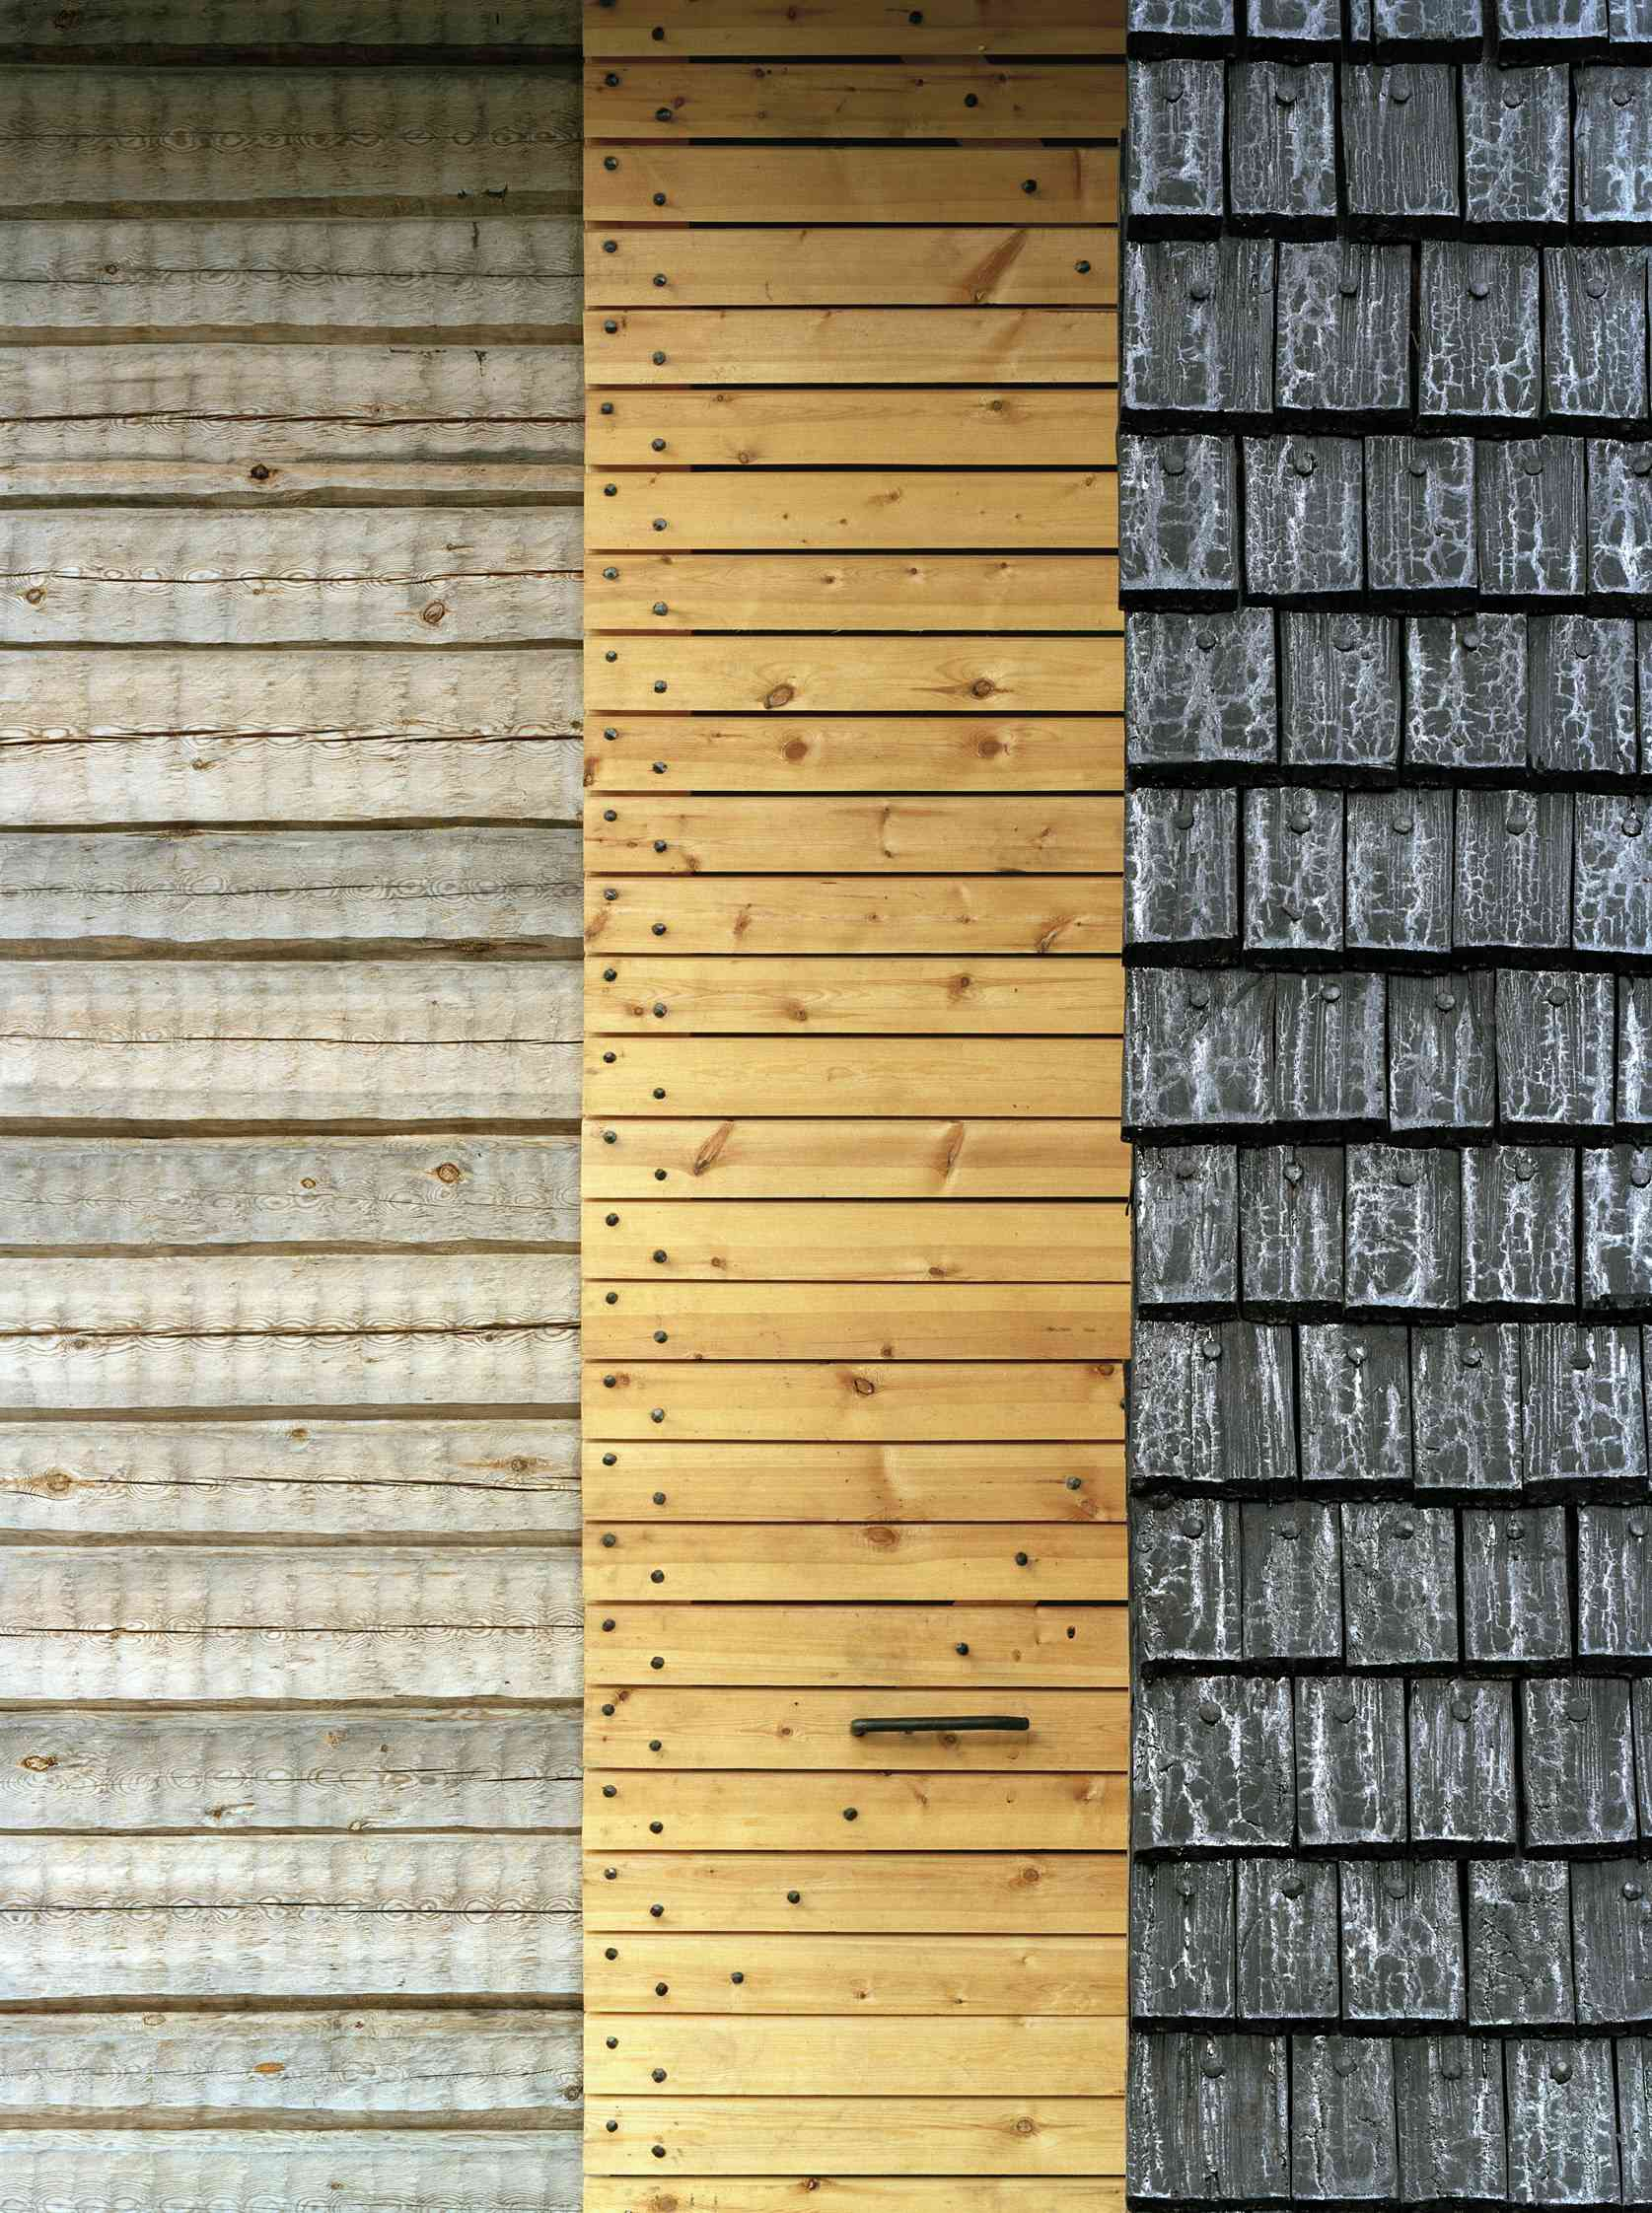 shingle sense Shingled definition, a thin piece of wood, slate, metal, asbestos, or the like, usually oblong, laid in overlapping rows to cover the roofs and walls of buildings.